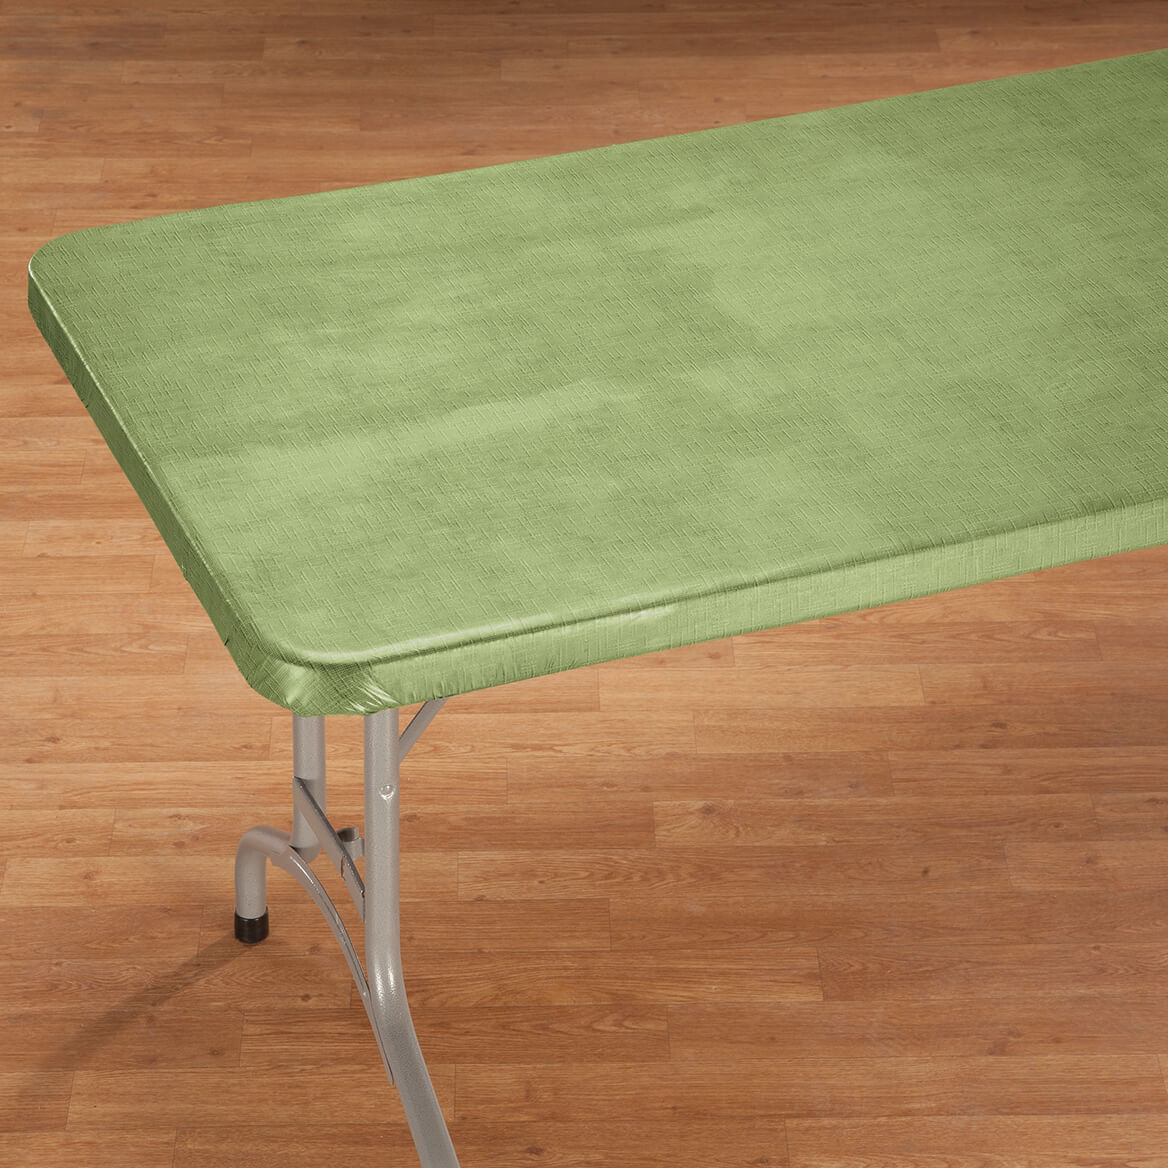 Illusion Weave Vinyl Elasticized Banquet Table Cover By